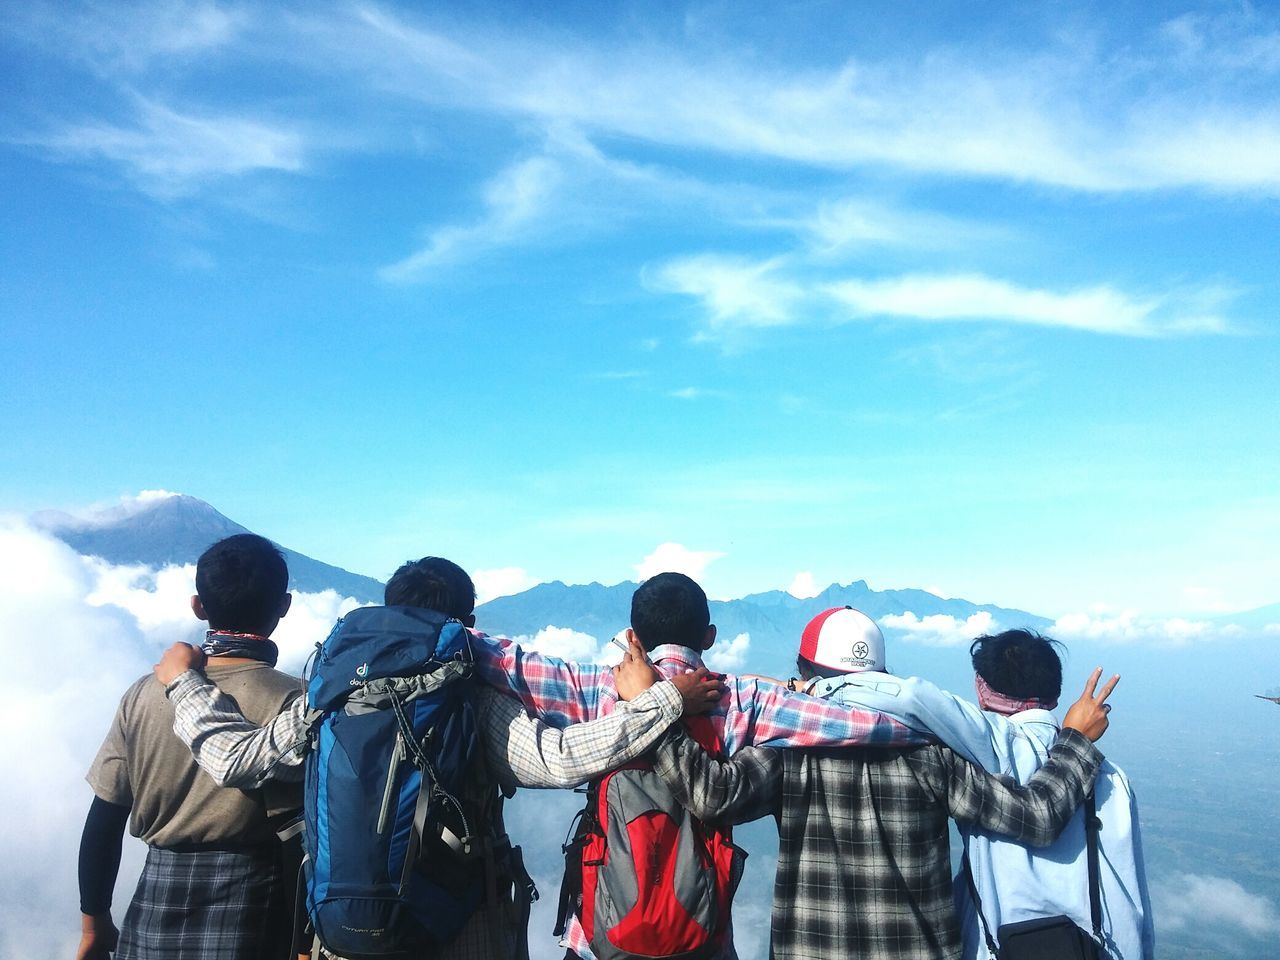 sky, day, rear view, real people, medium group of people, men, mountain, nature, blue, cloud - sky, sunlight, beauty in nature, outdoors, togetherness, people